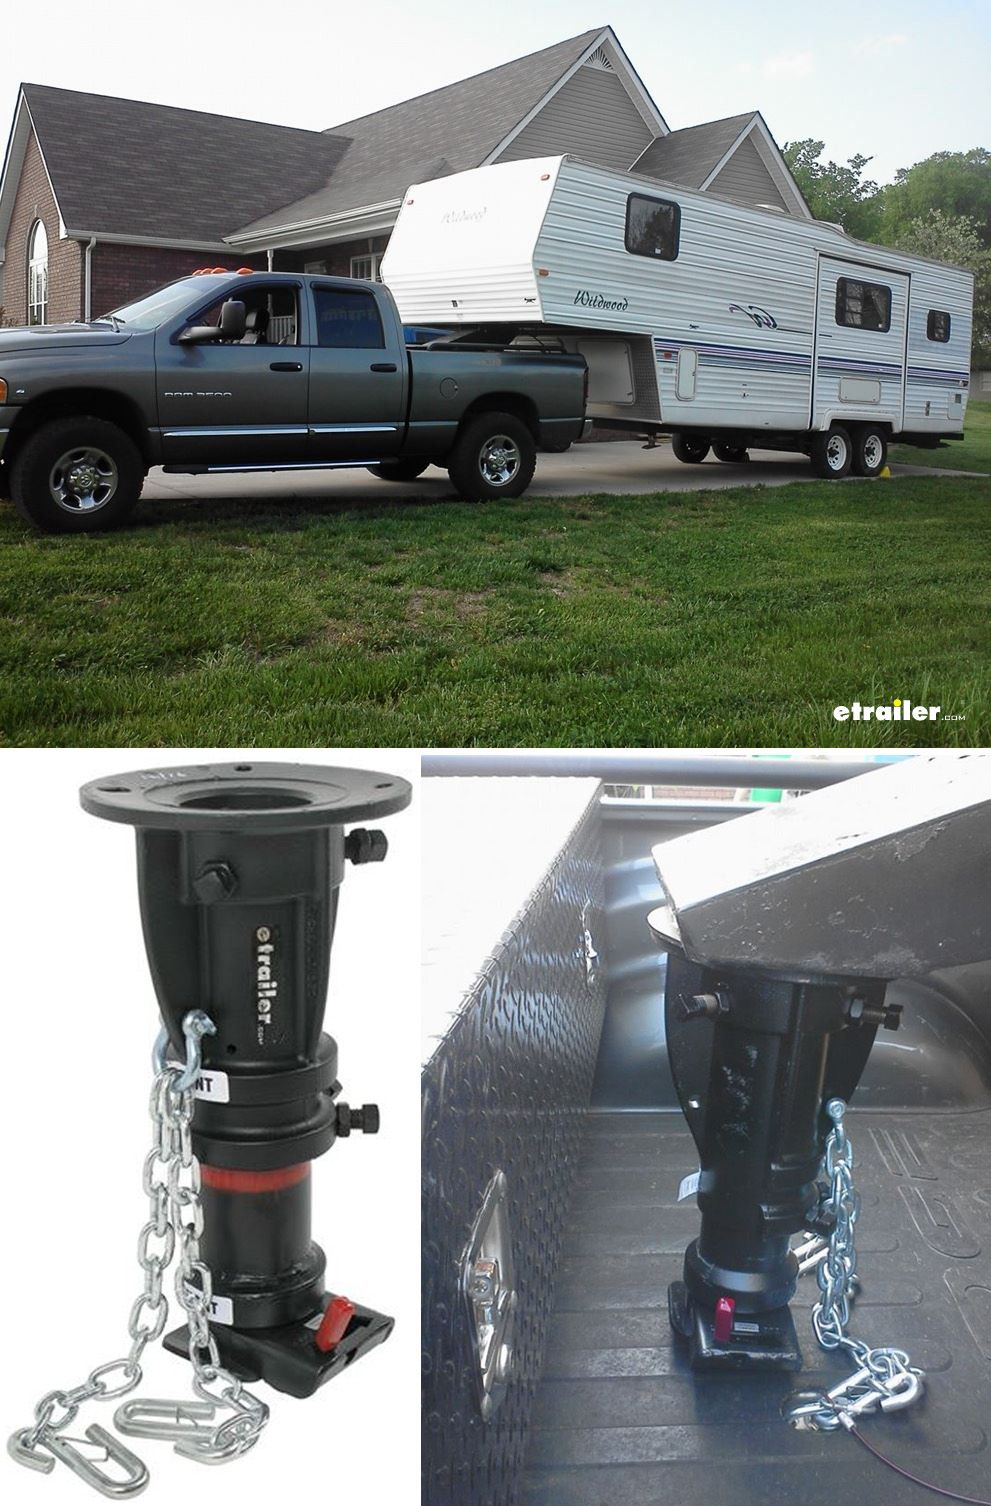 hook up and tow your 5th wheel camper with an adapter [ 991 x 1506 Pixel ]